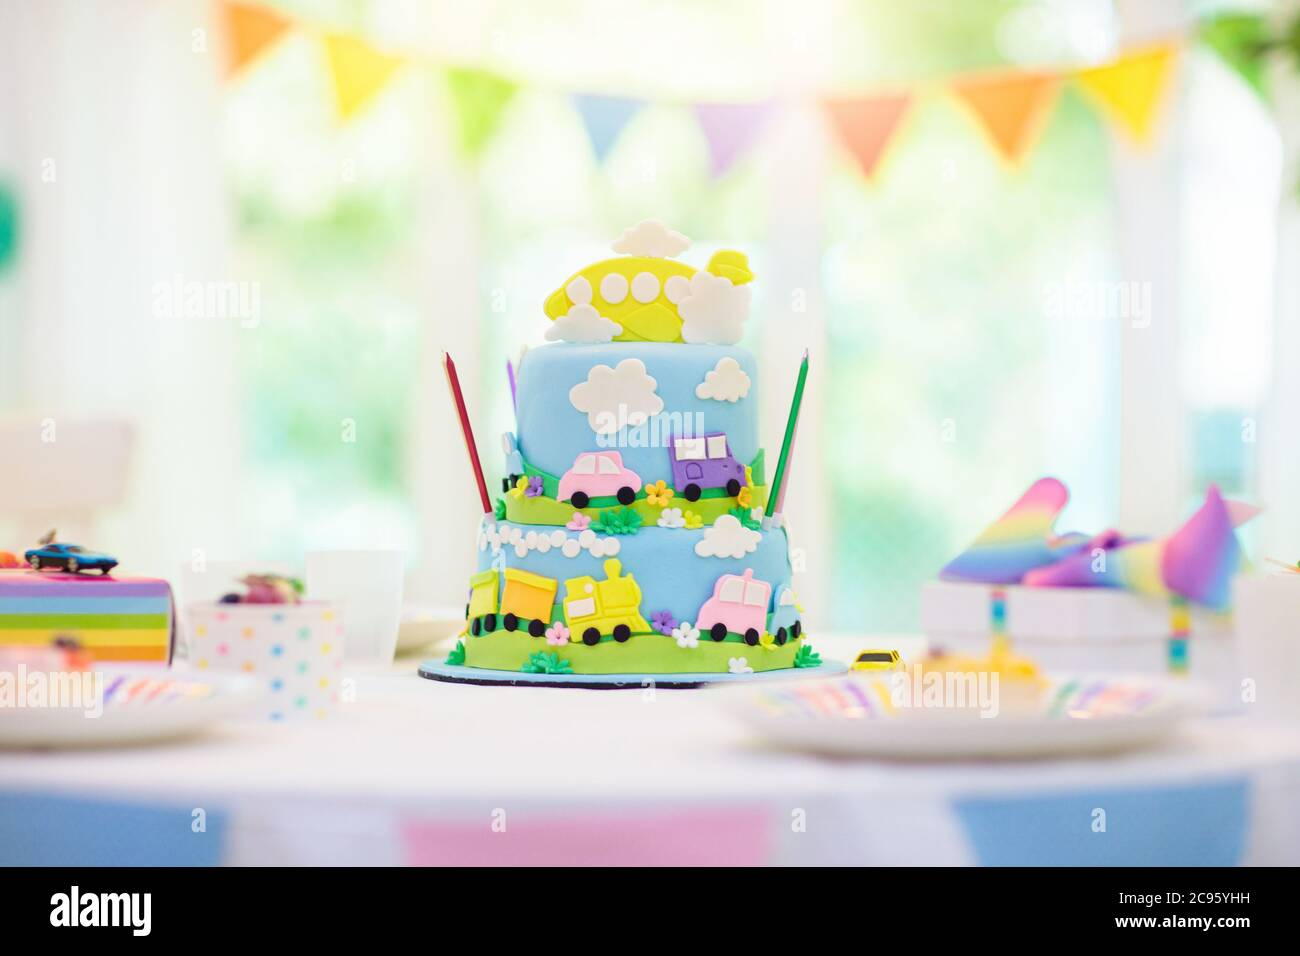 Kids Birthday Party Boy Cake With Car And Airplane Child Blowing Out Candles On Colorful Cake Party Decorations Rainbow Flag Banners Balloons Ve Stock Photo Alamy